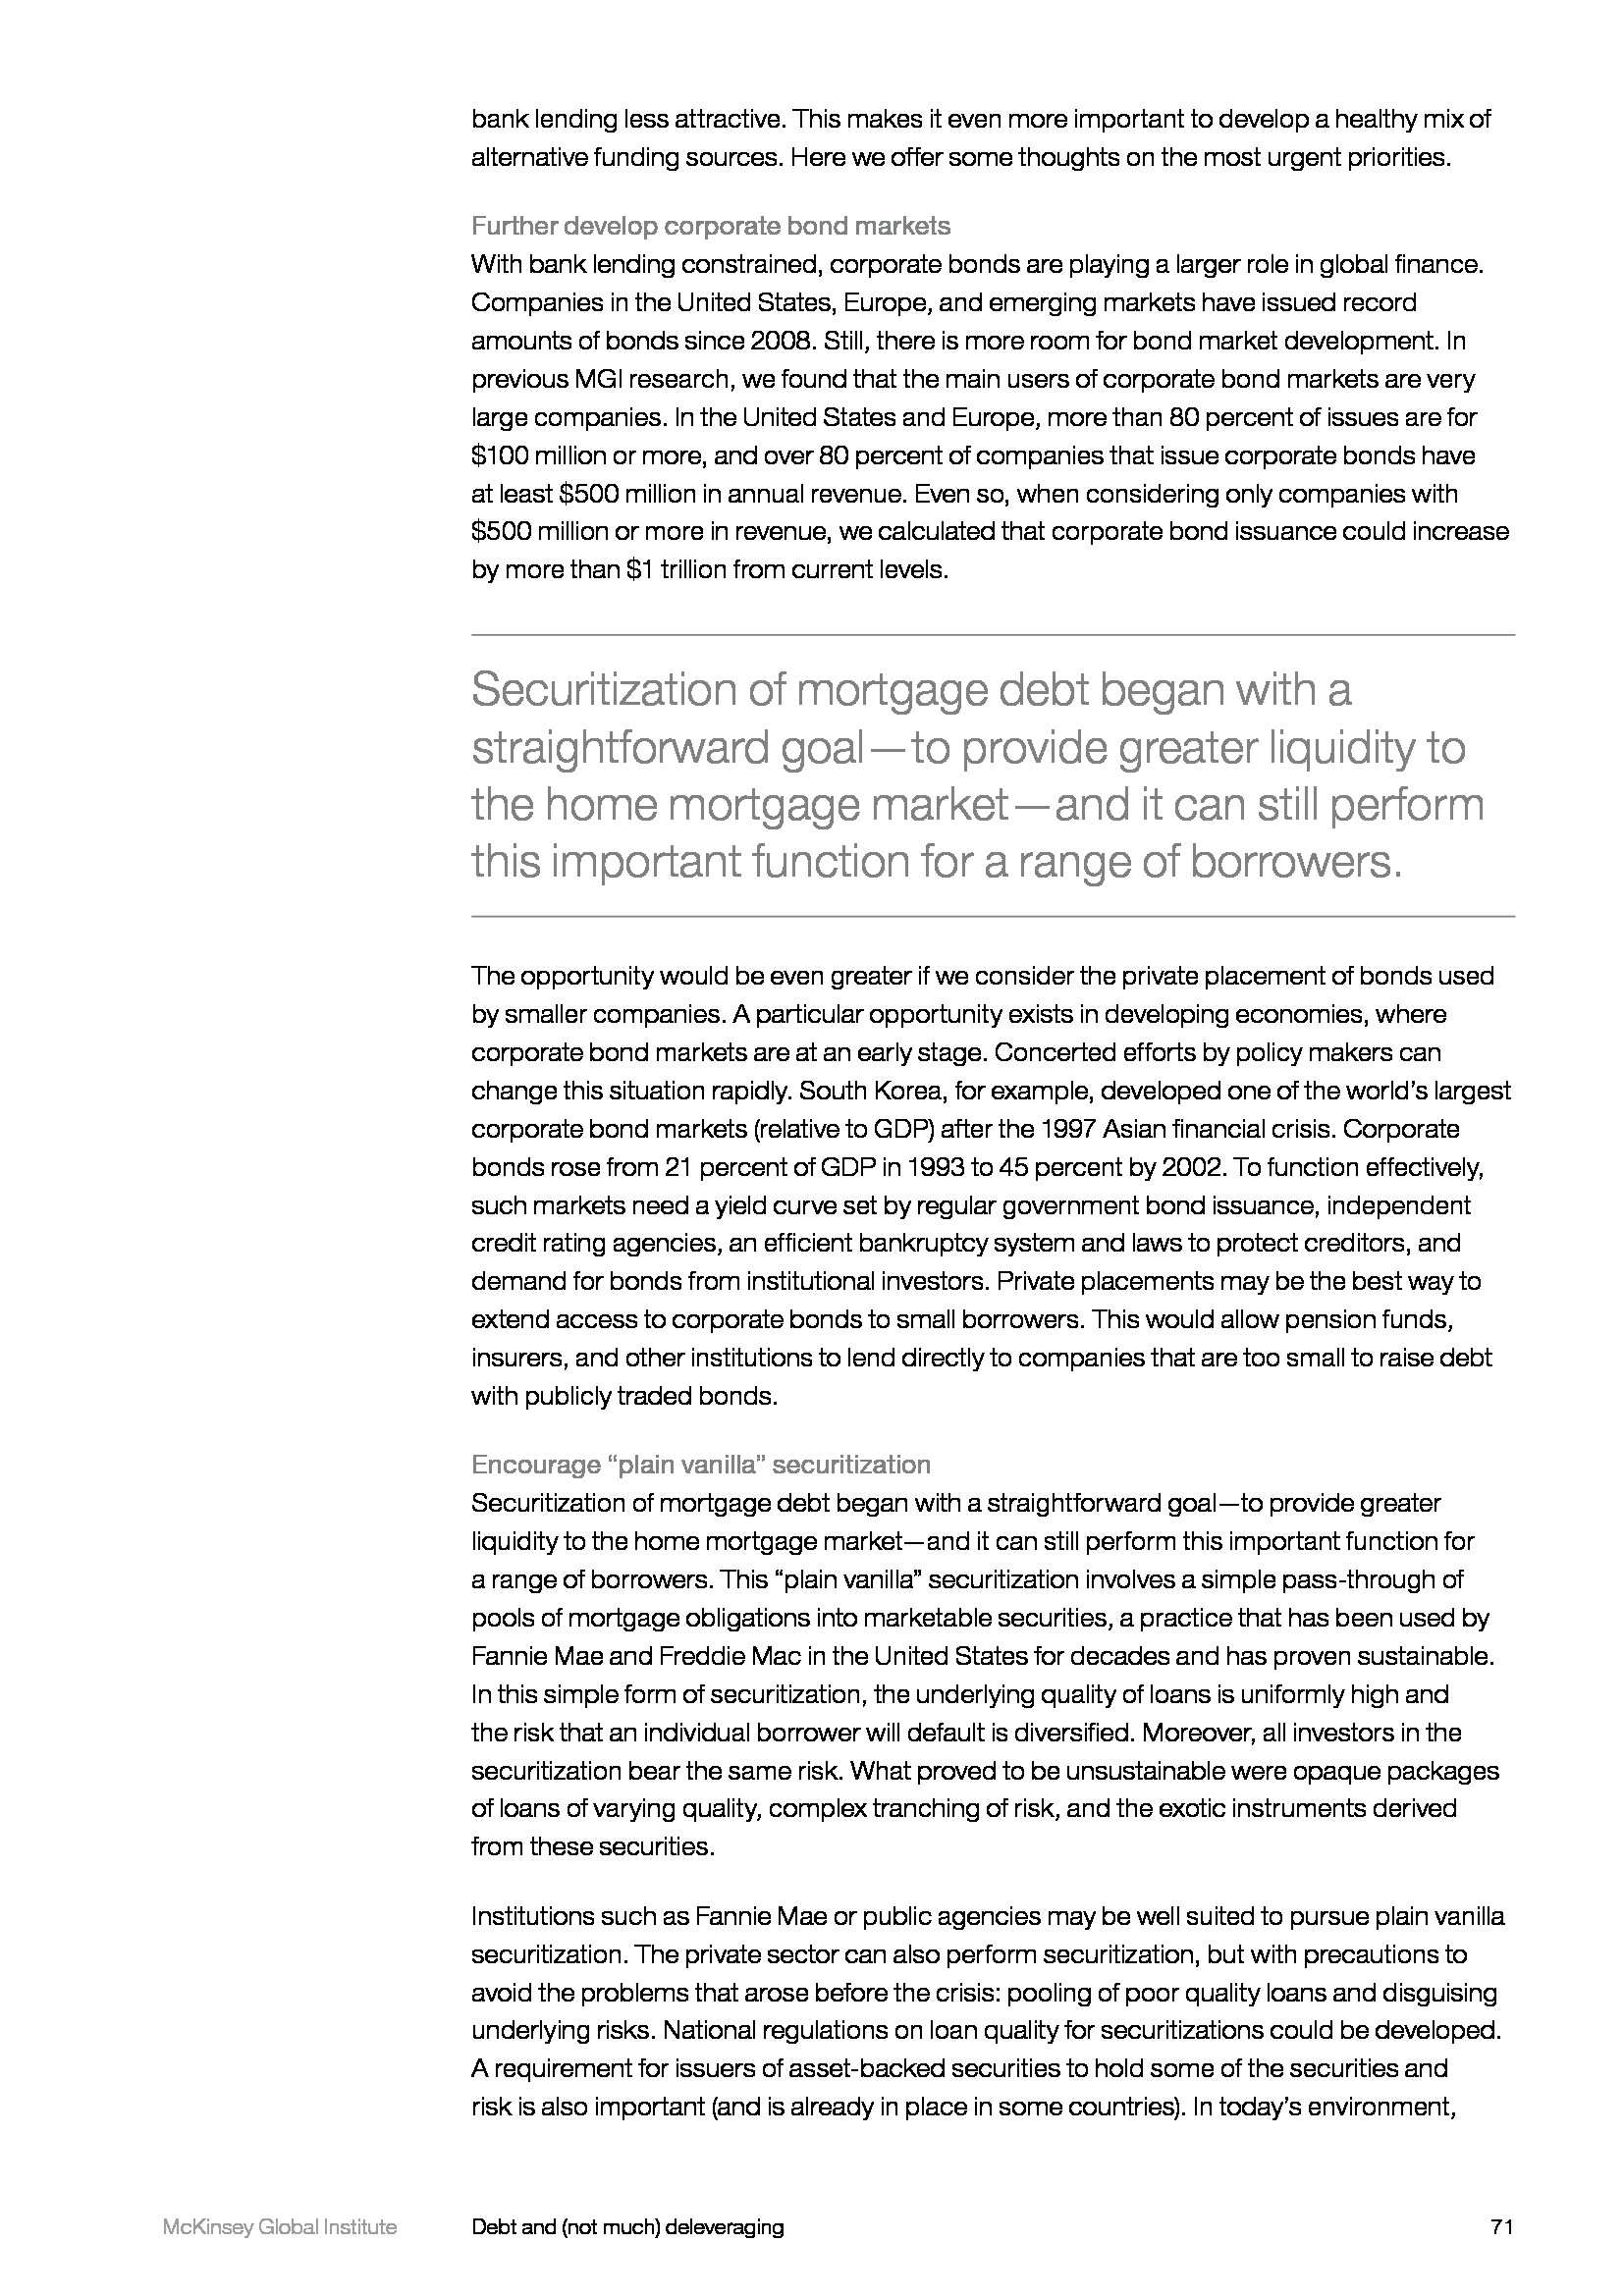 Advisorselect - Debt and (not much) deleveraging – February 2015